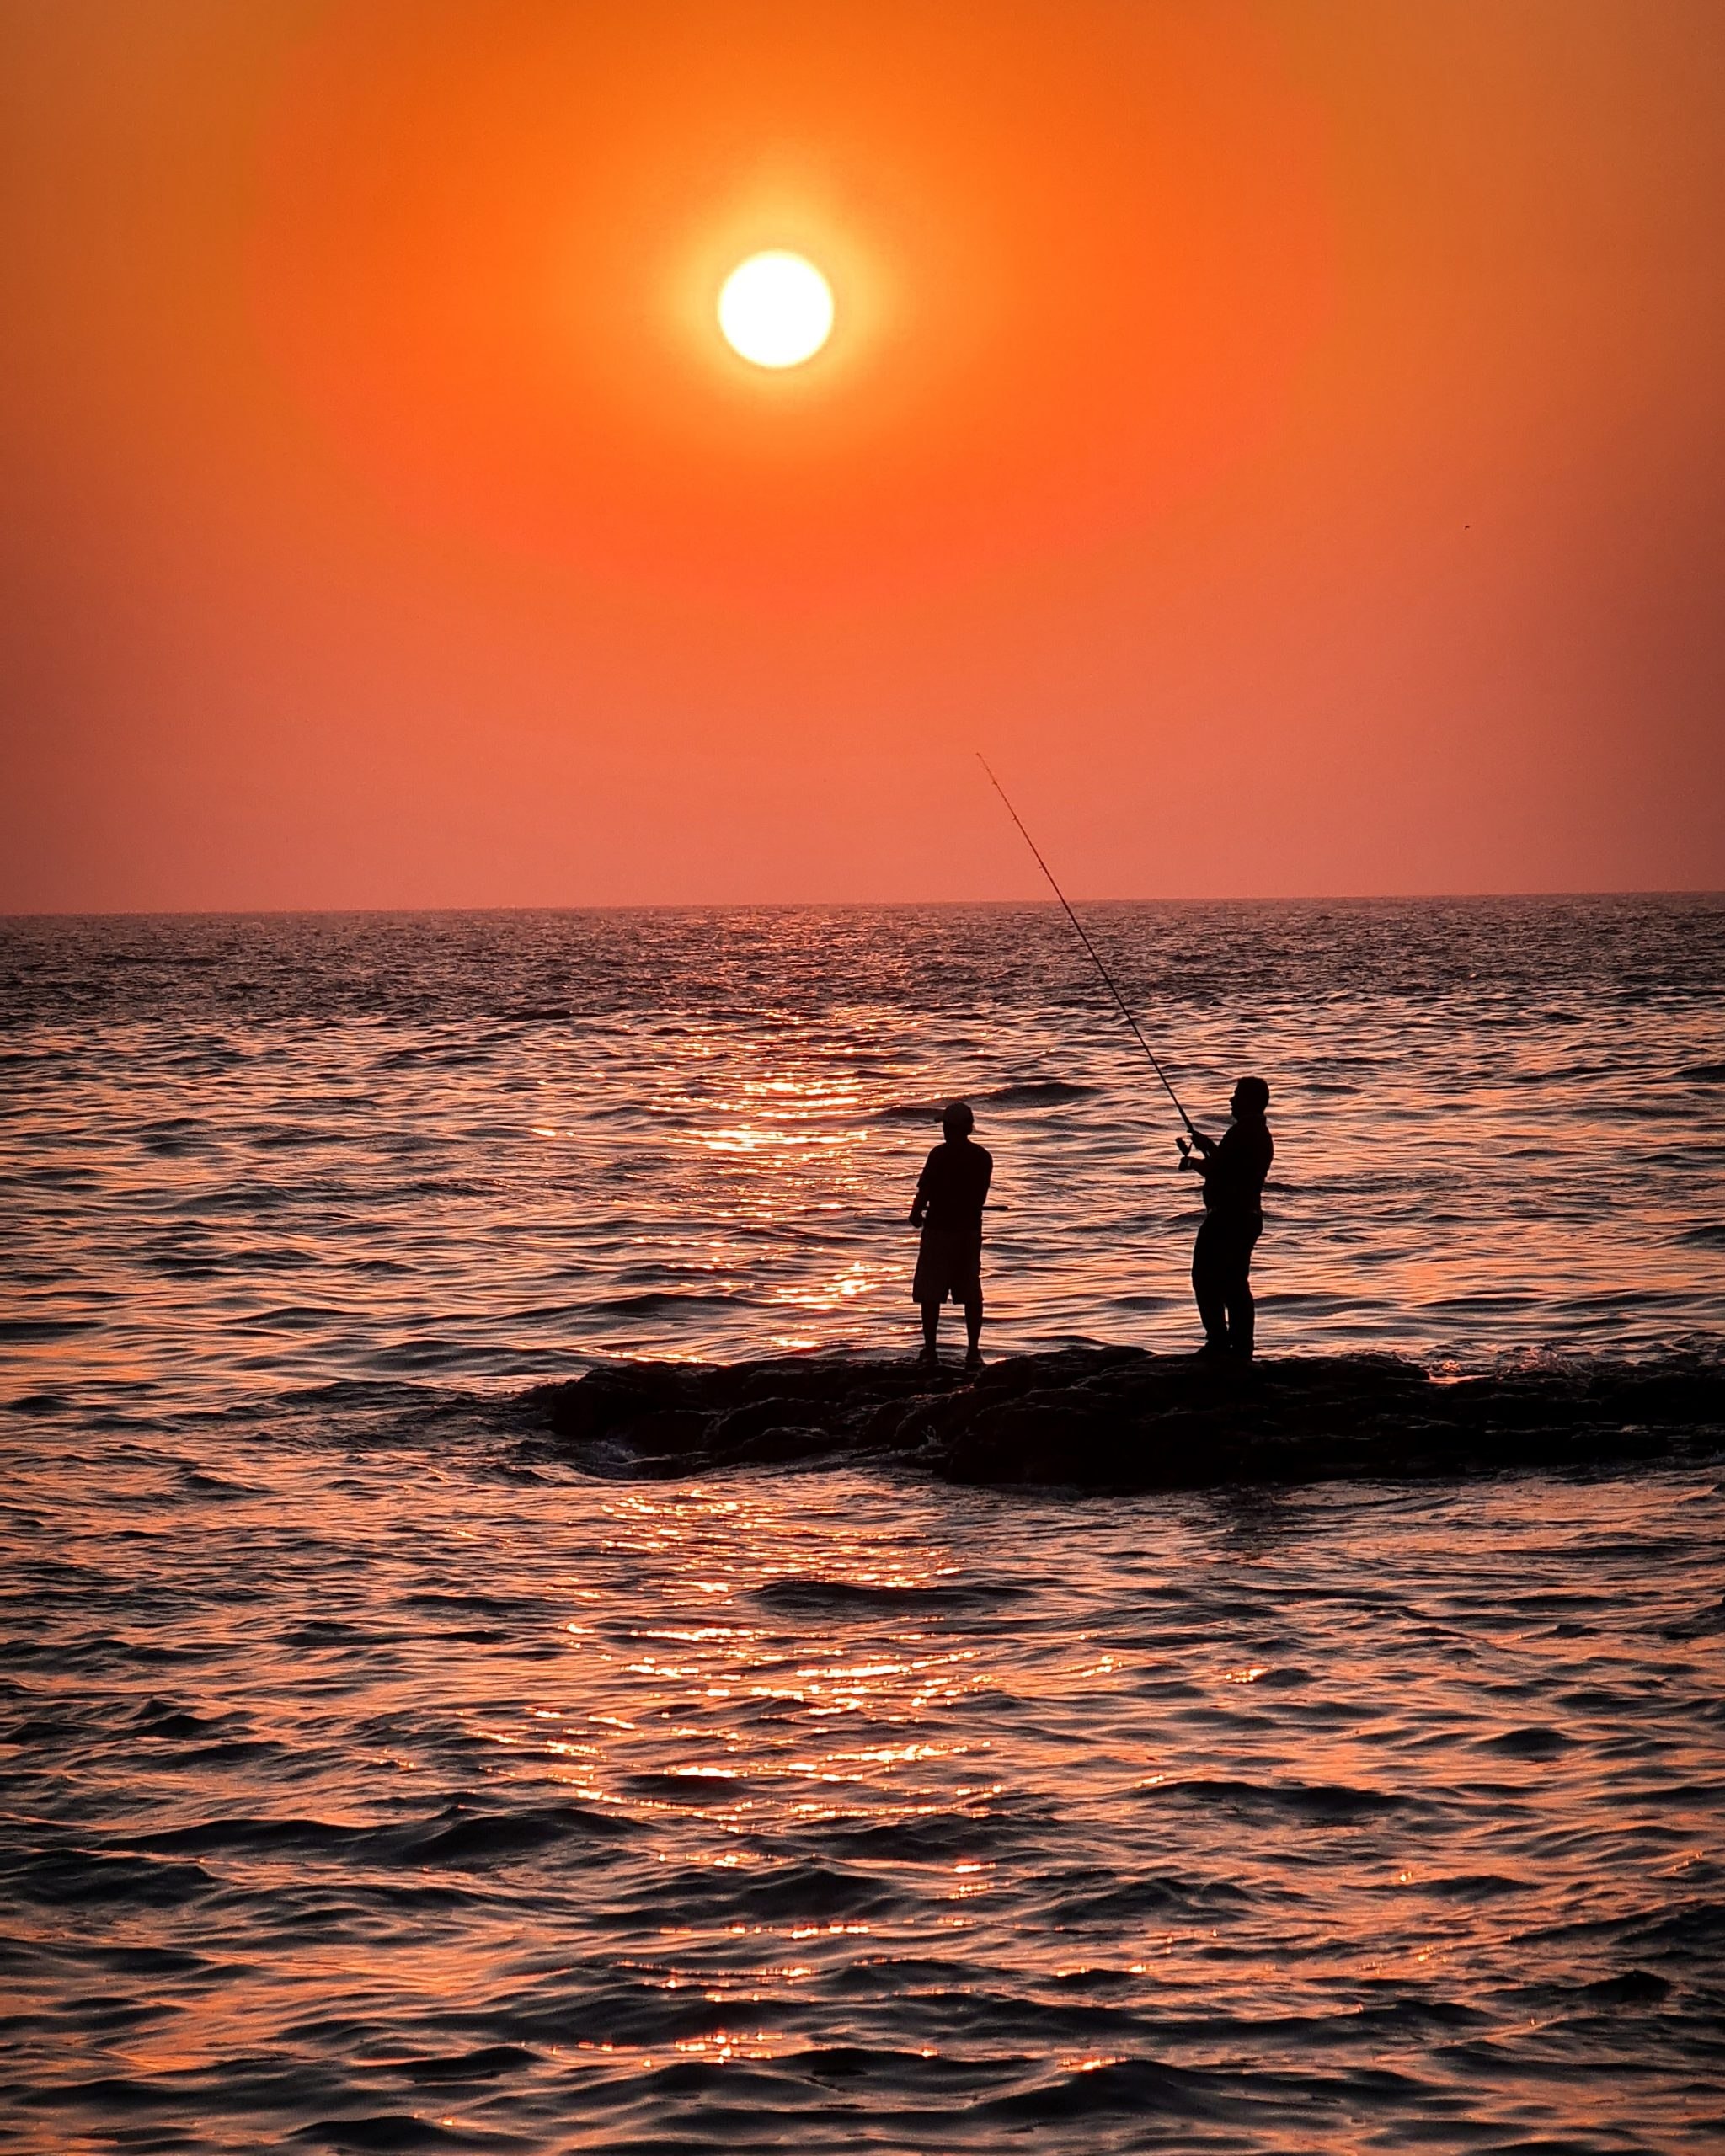 People fishing during sunset